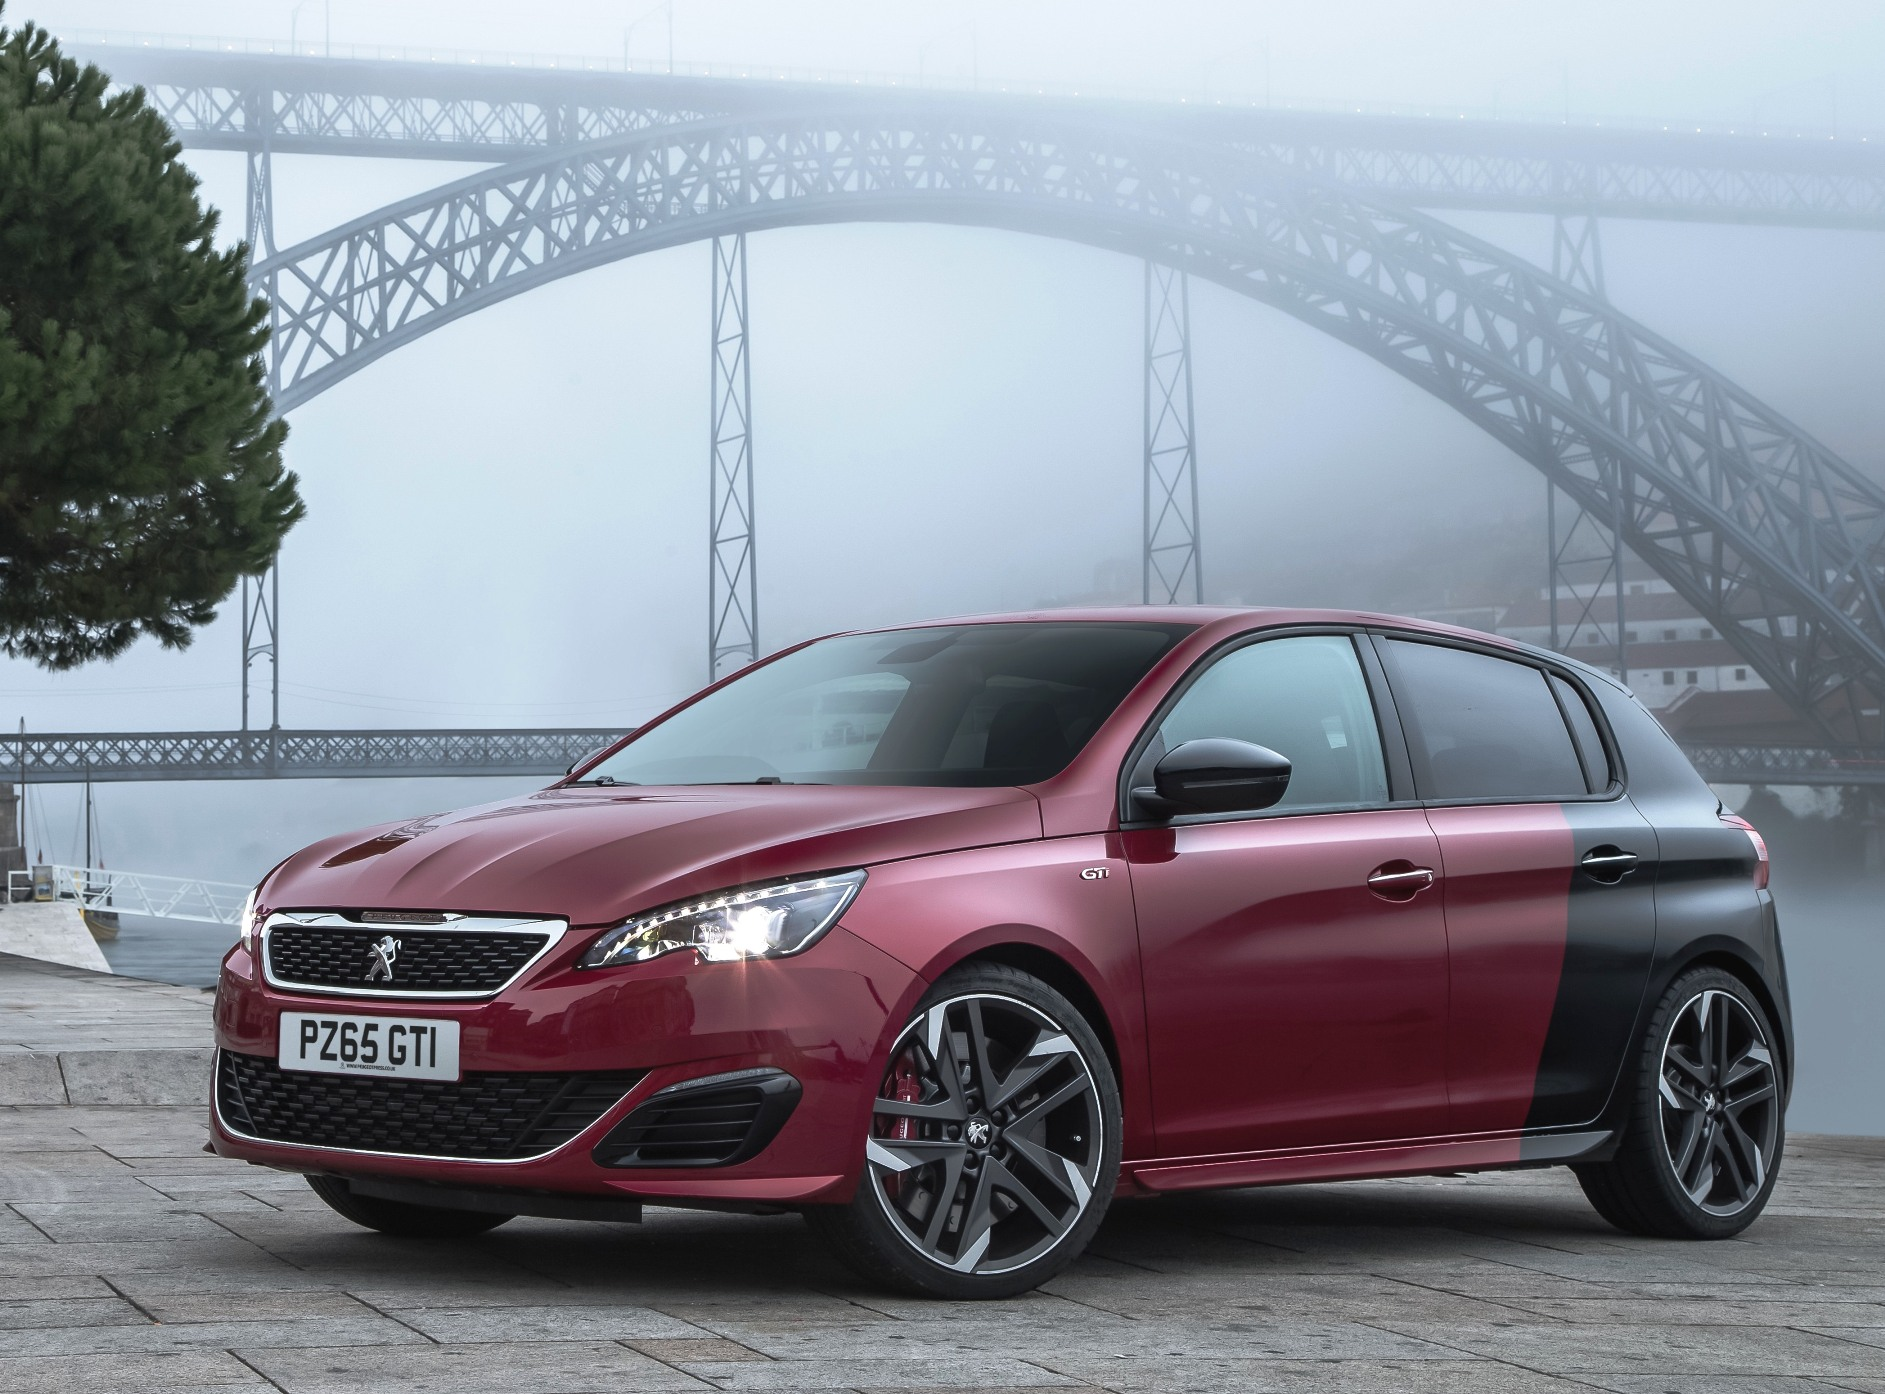 Peugeot 308 GTi split colour model static